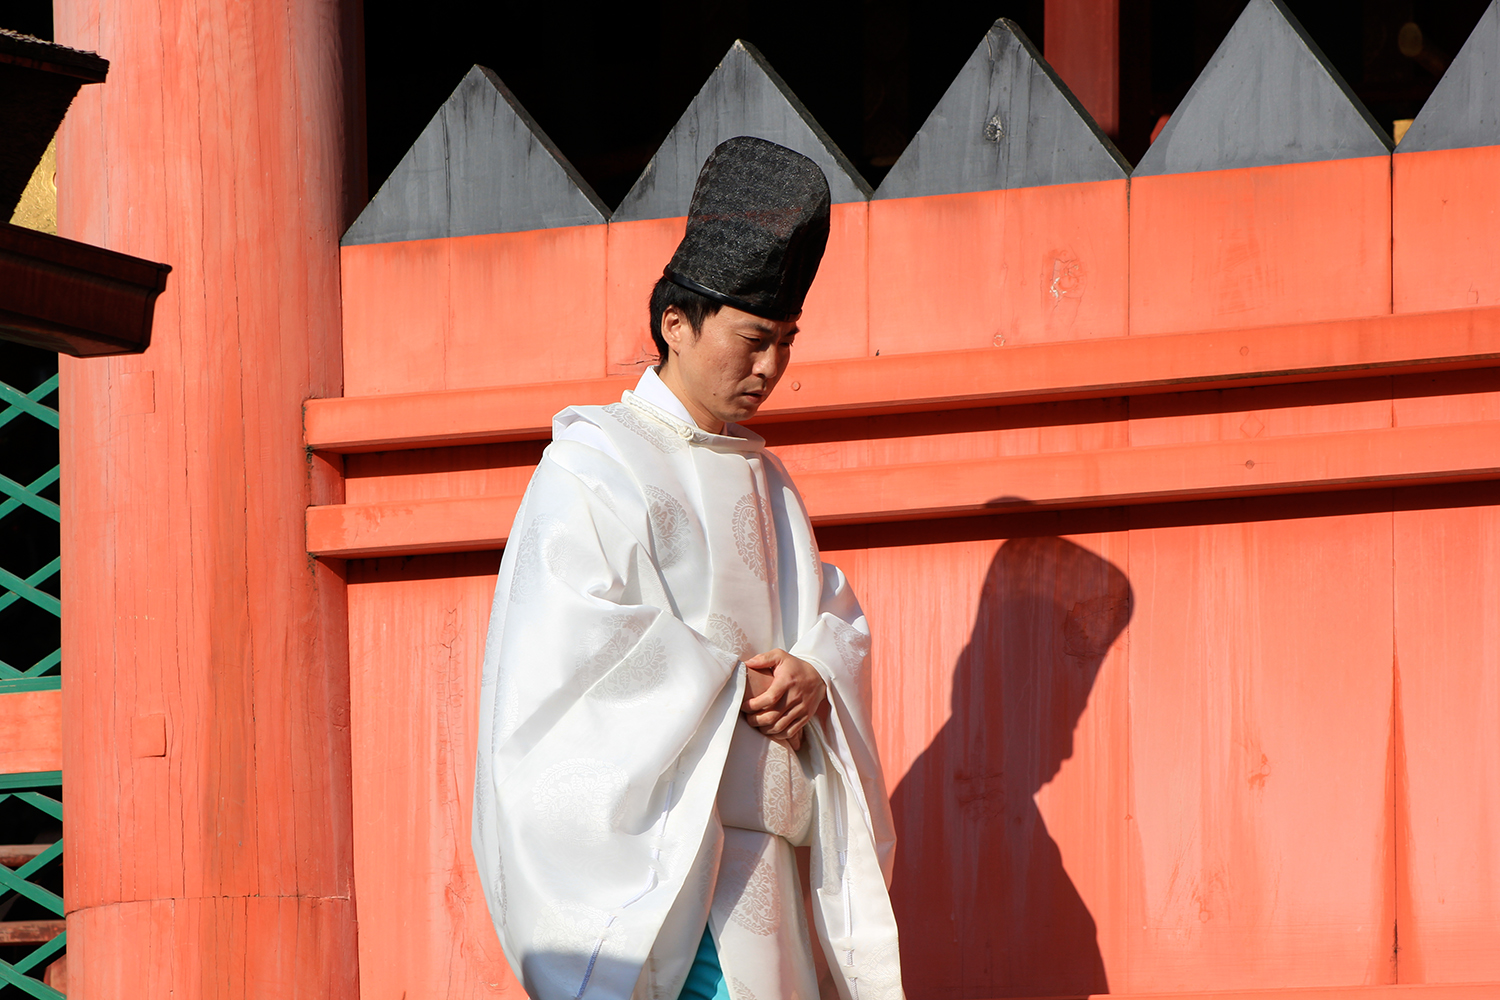 Shinto monk, Nara temple